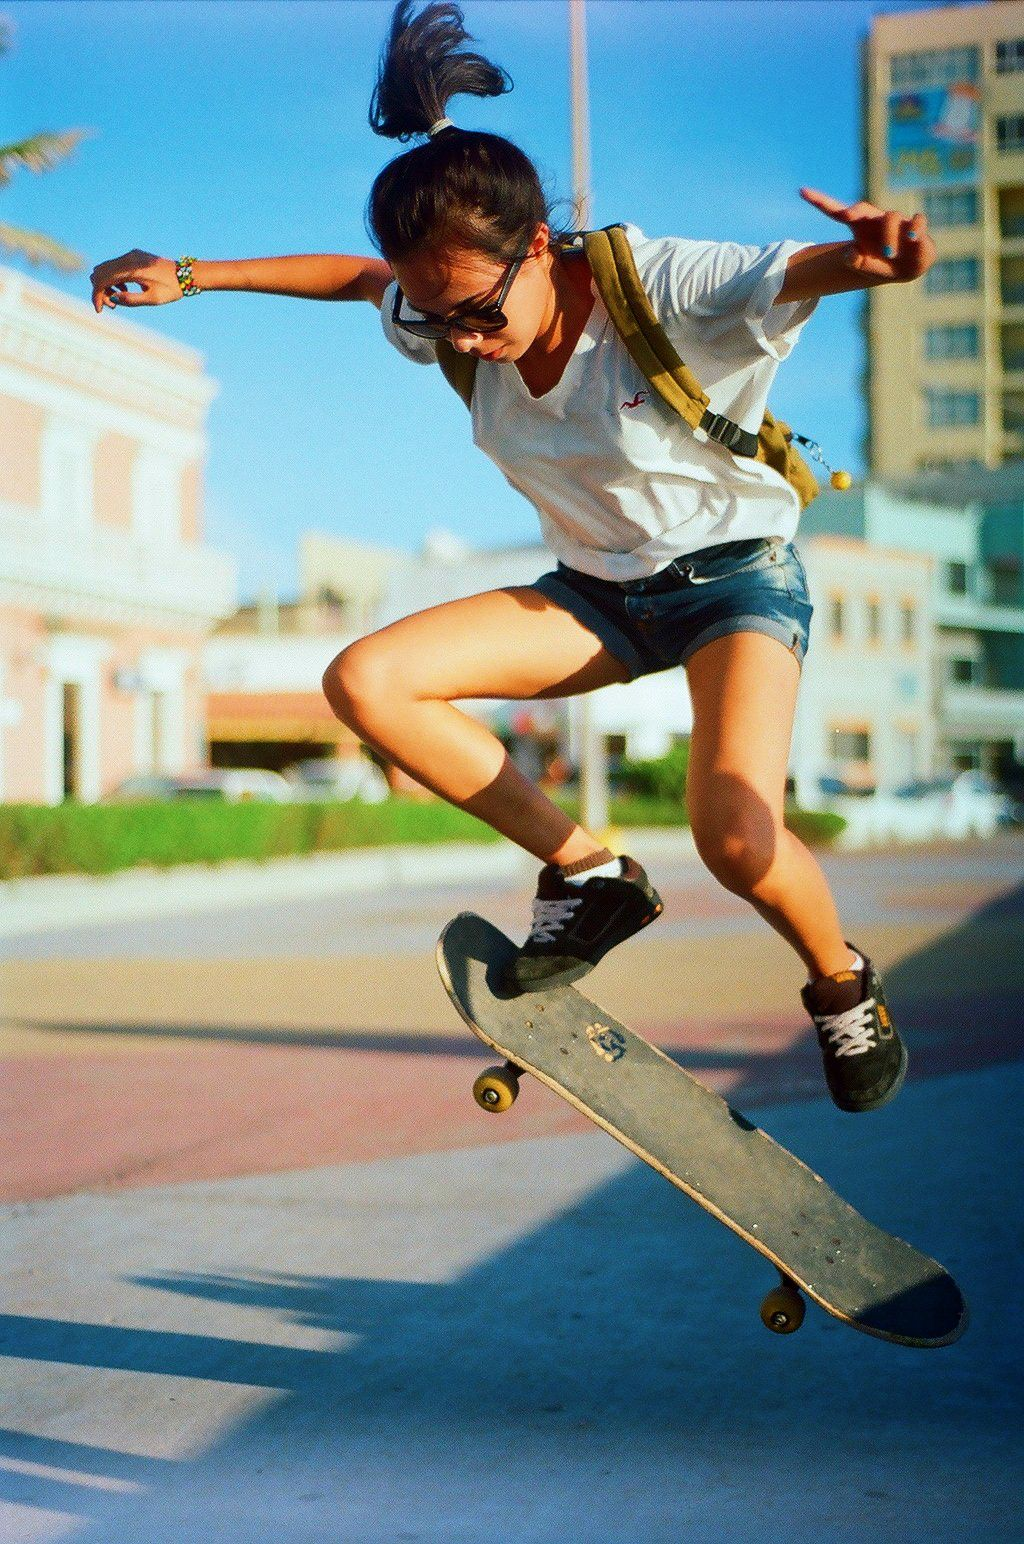 Skate Girl by juanNeve on DeviantArt